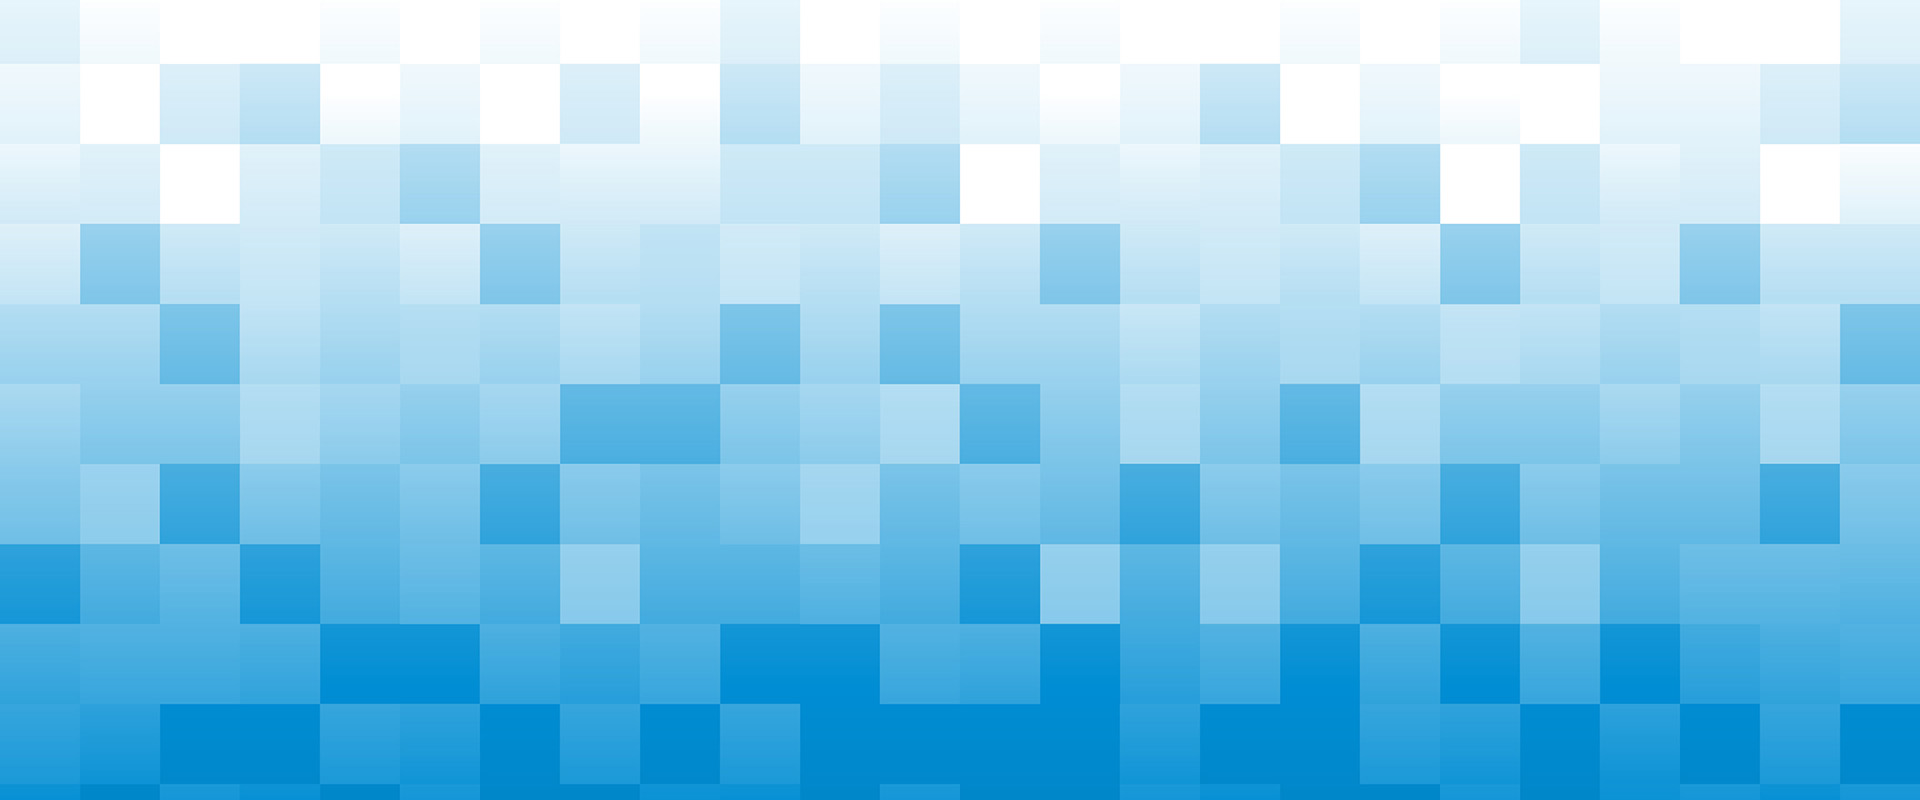 box background  box  rectangle  blue background image for